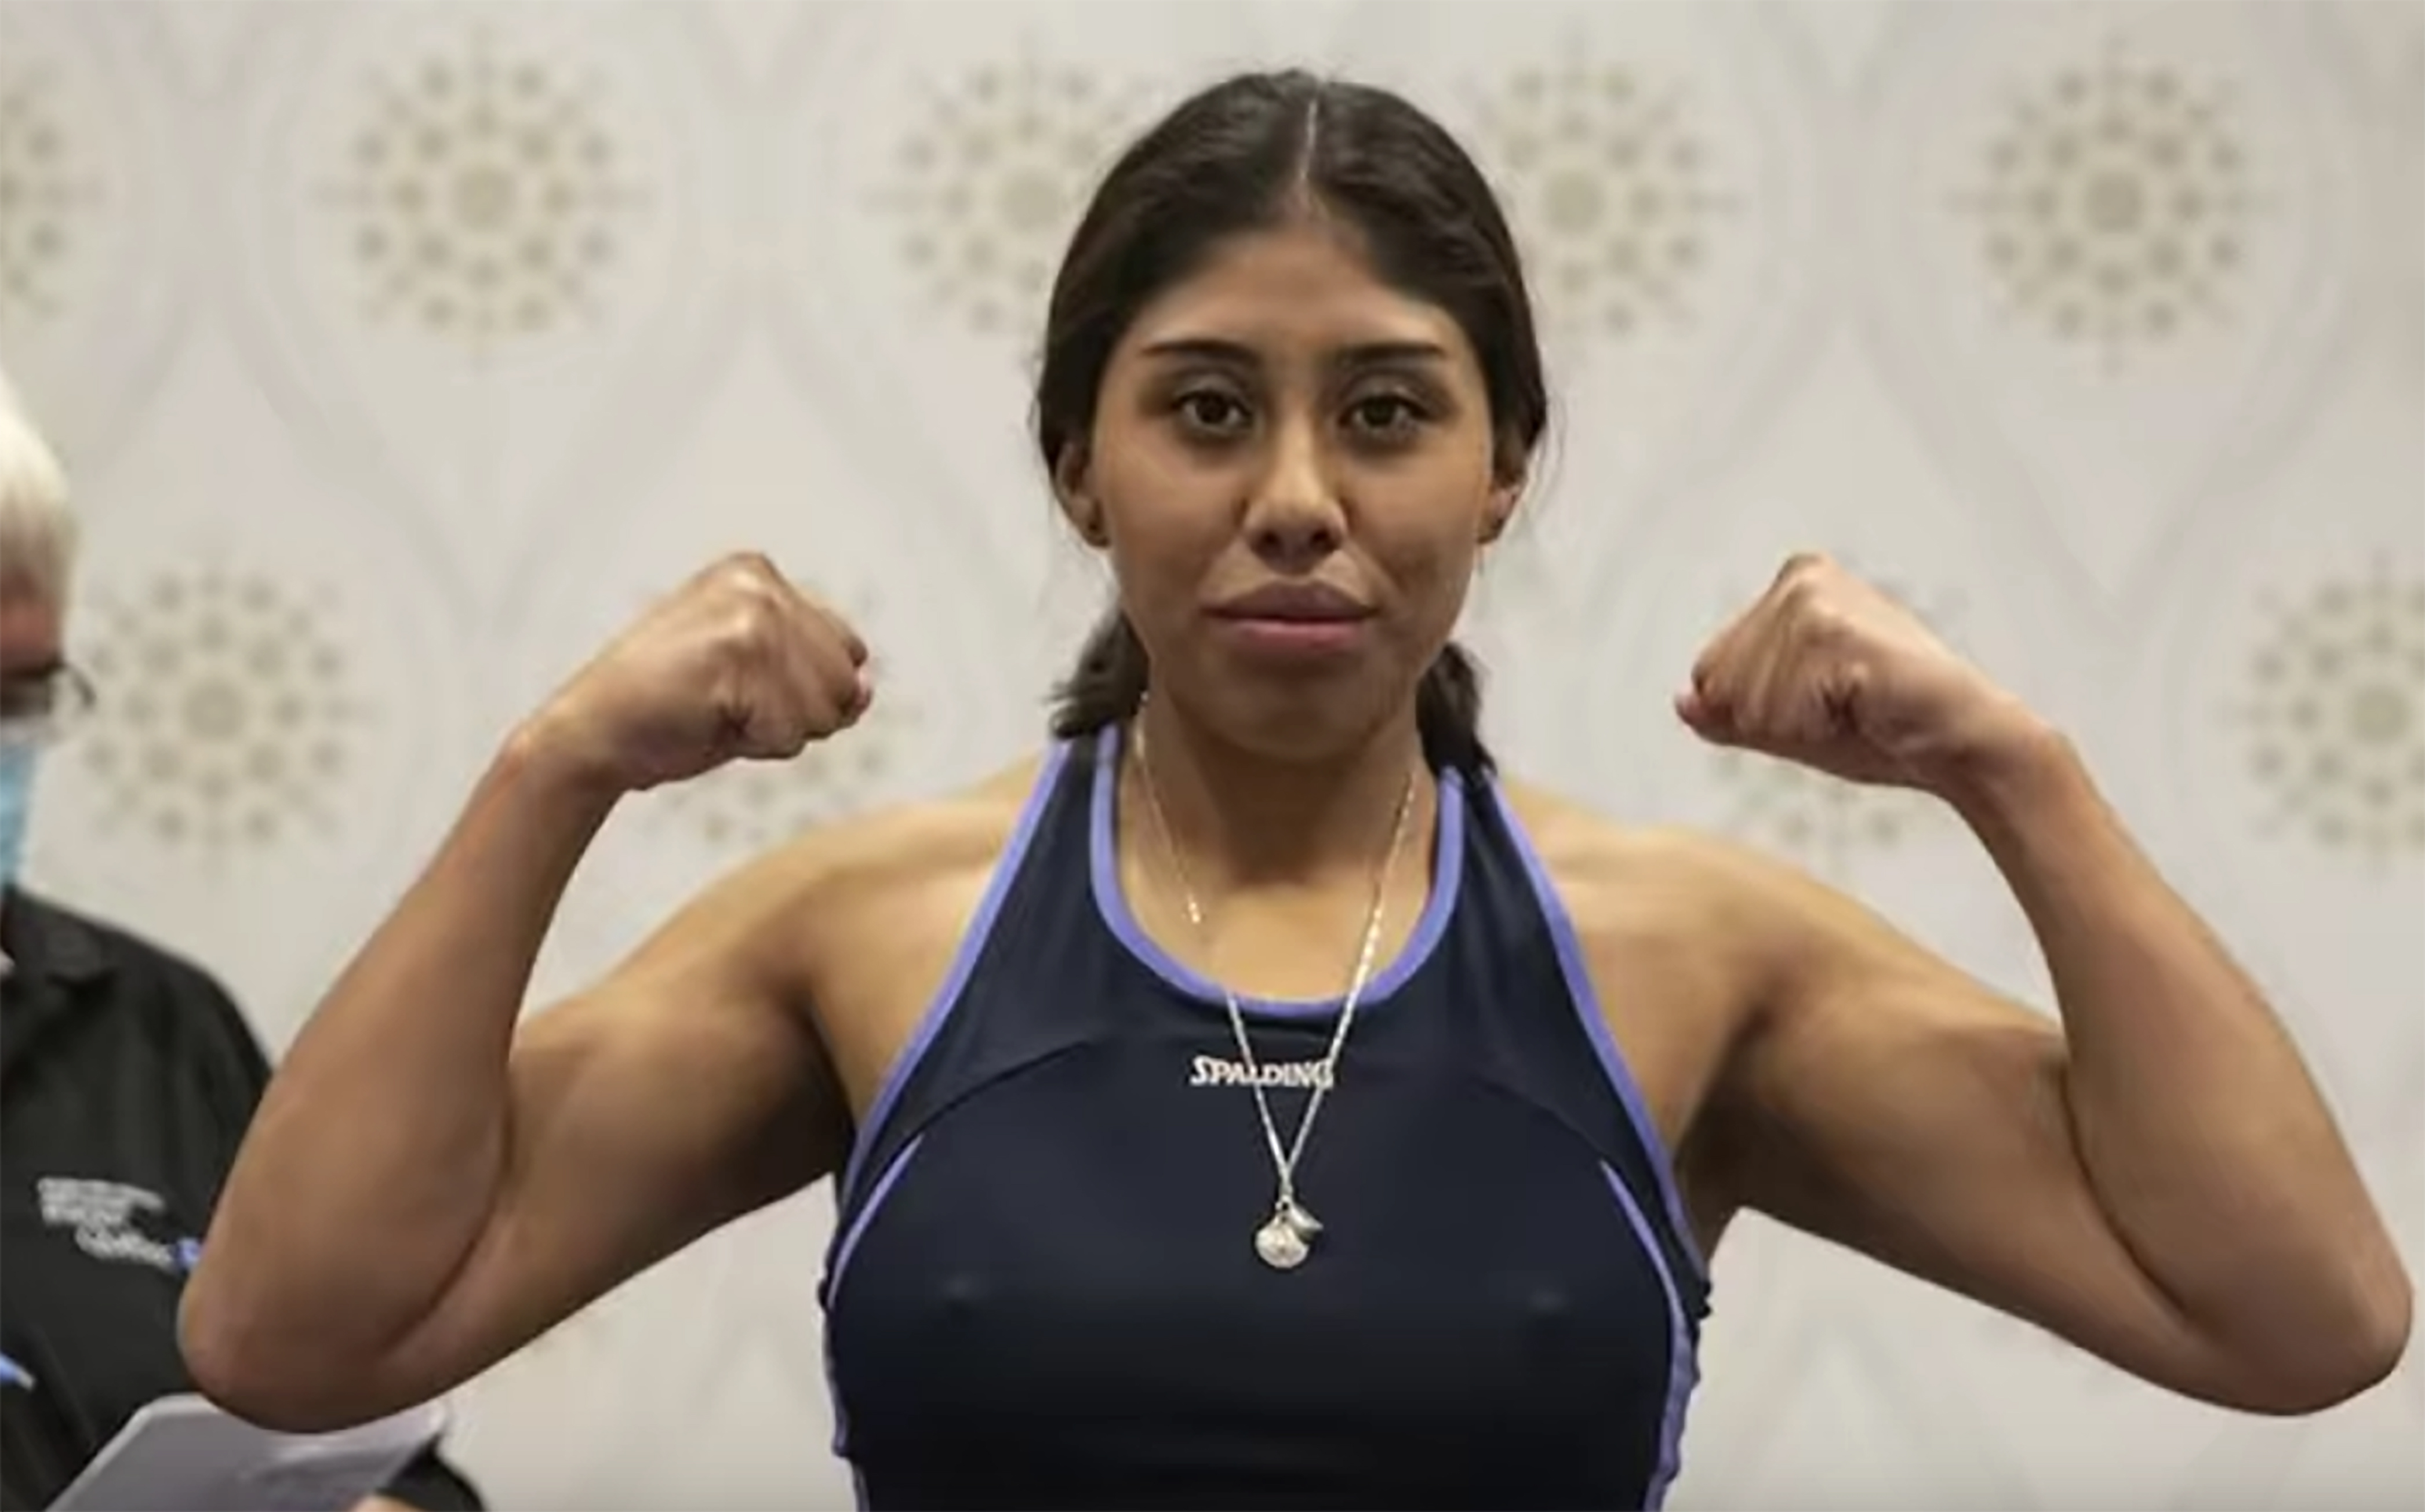 Jeanette Zacarías Zapata passed away after being knocked out in a bout in Montreal, Canada.